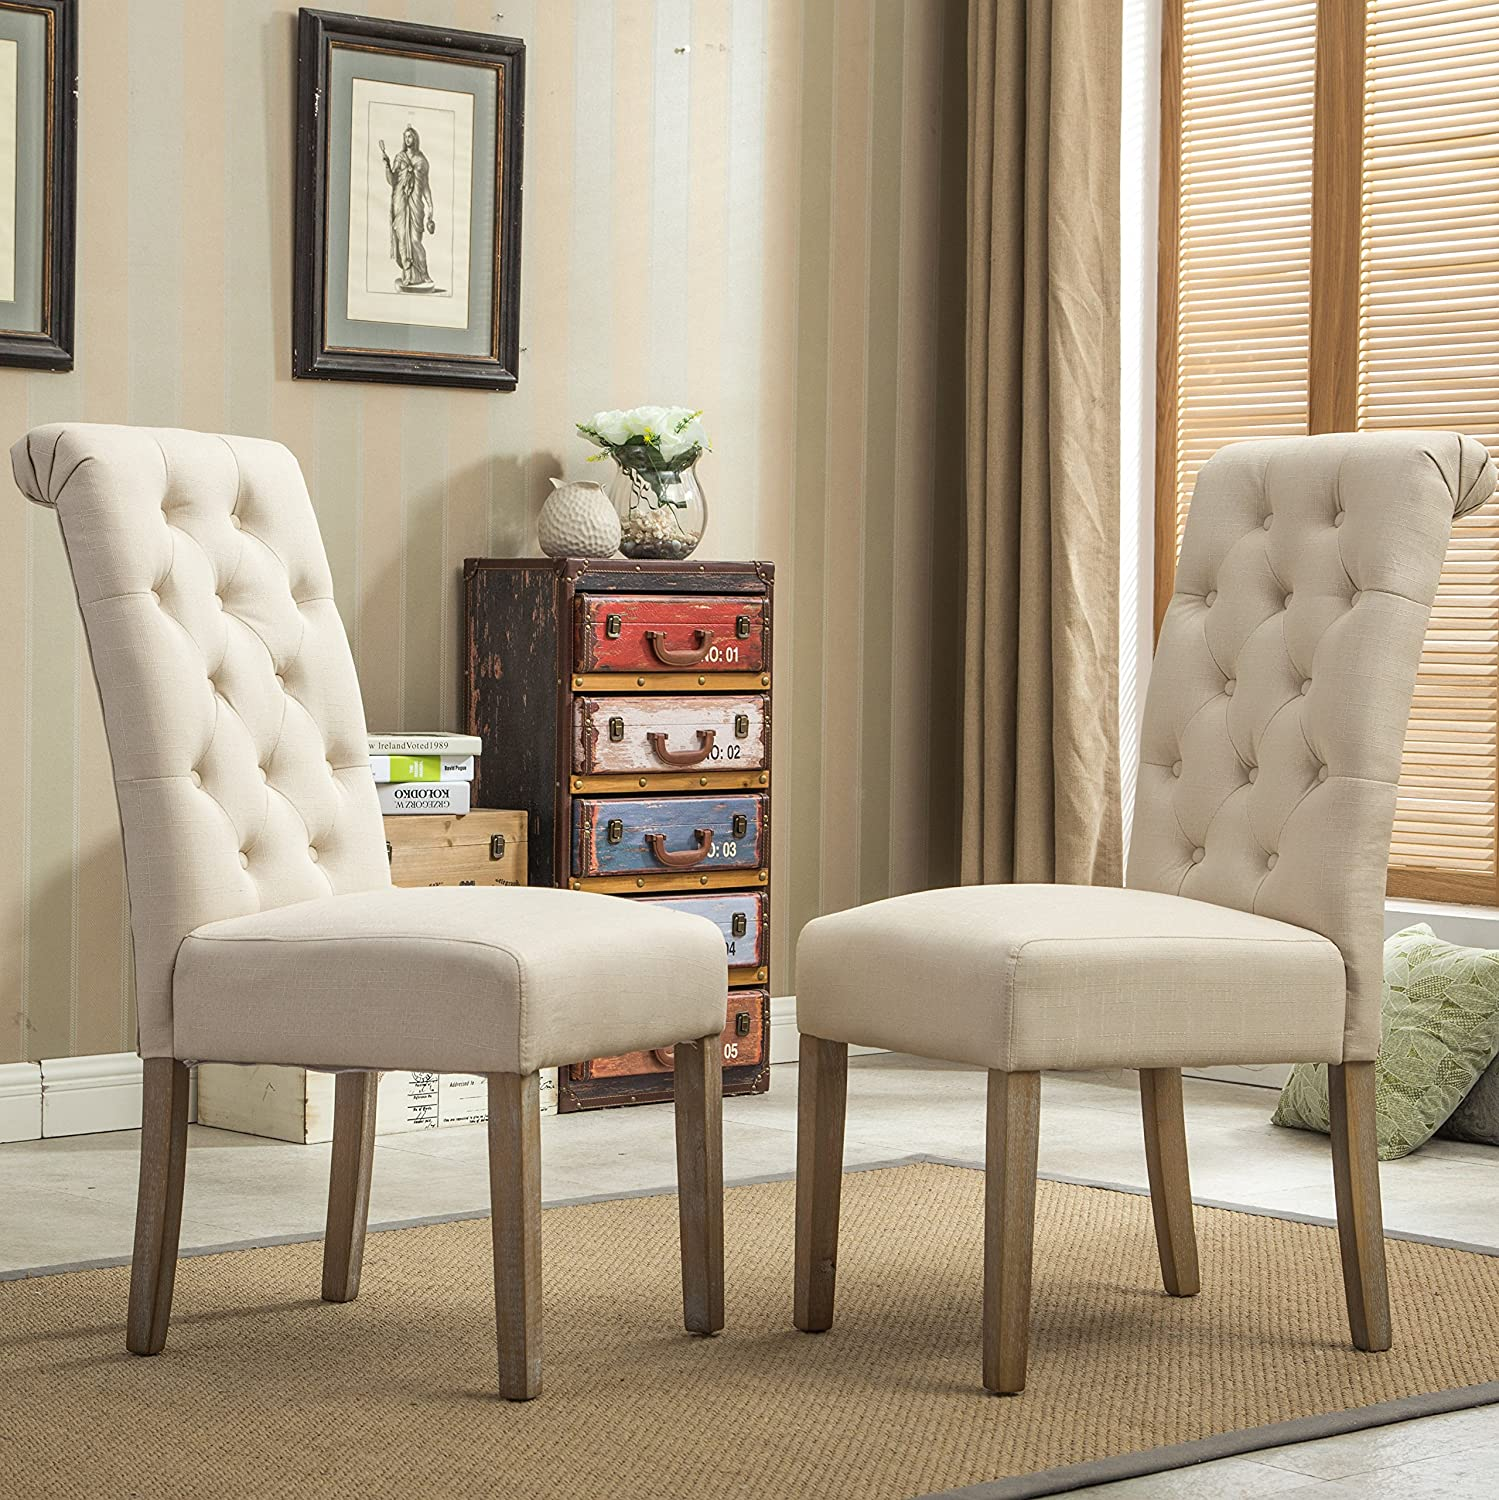 Amazon com roundhill furniture habit solid wood tufted parsons dining chair set of 2 tan chairs